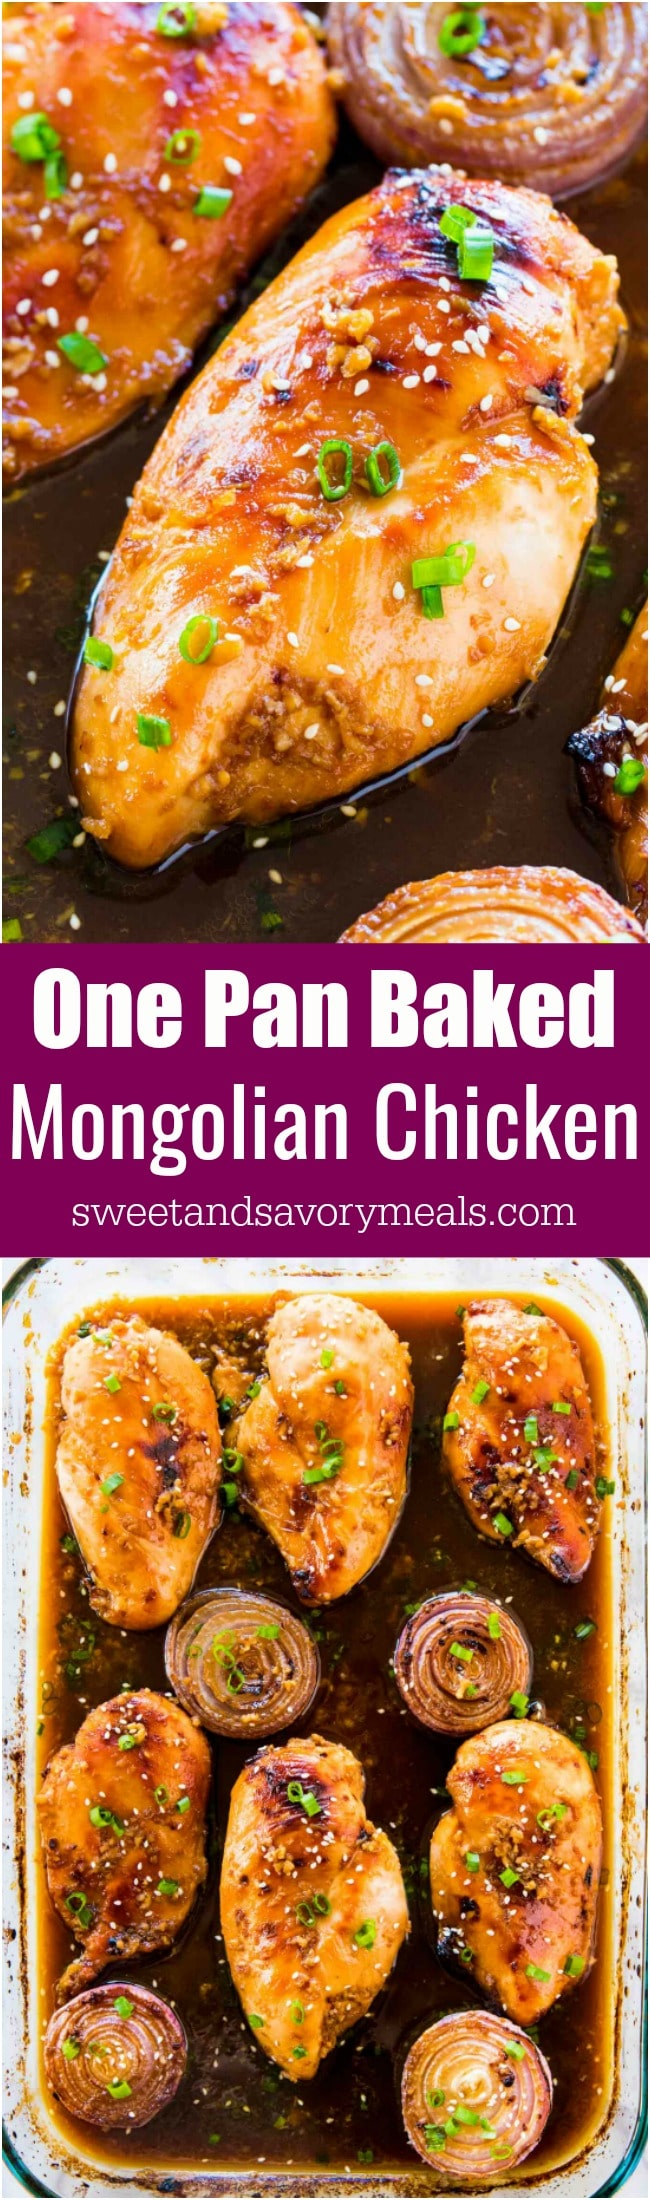 Oven Baked Mongolian Chicken is the perfect combo of sweet and savory. A very easy dish, made in one pan and baked instead of fried.